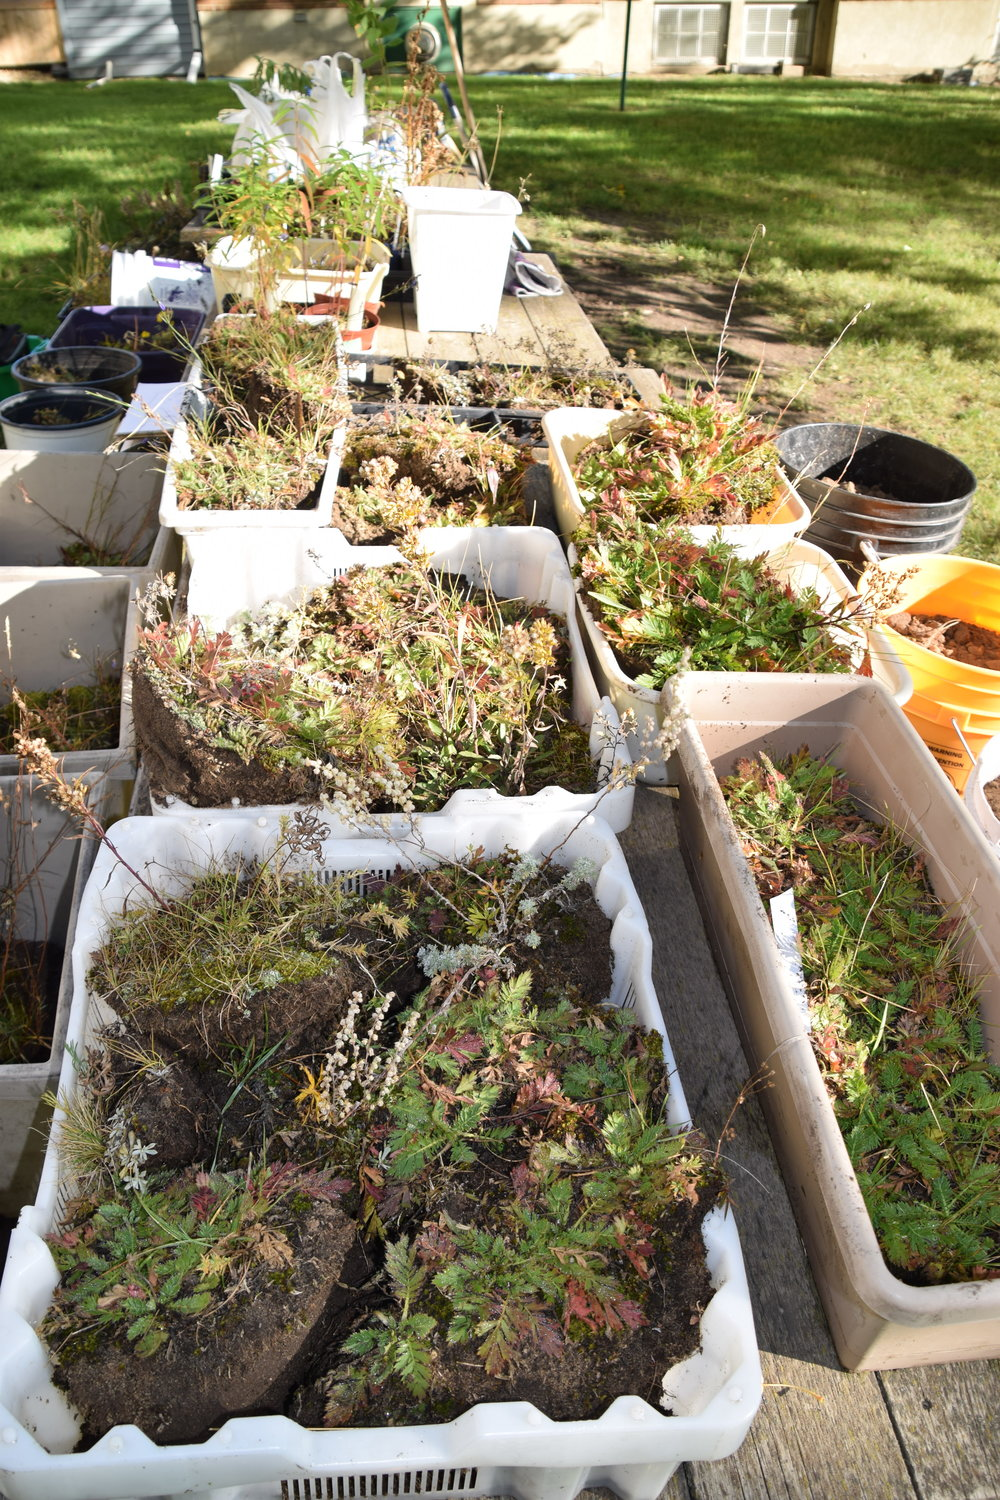 Plants waiting to go in back in the ground